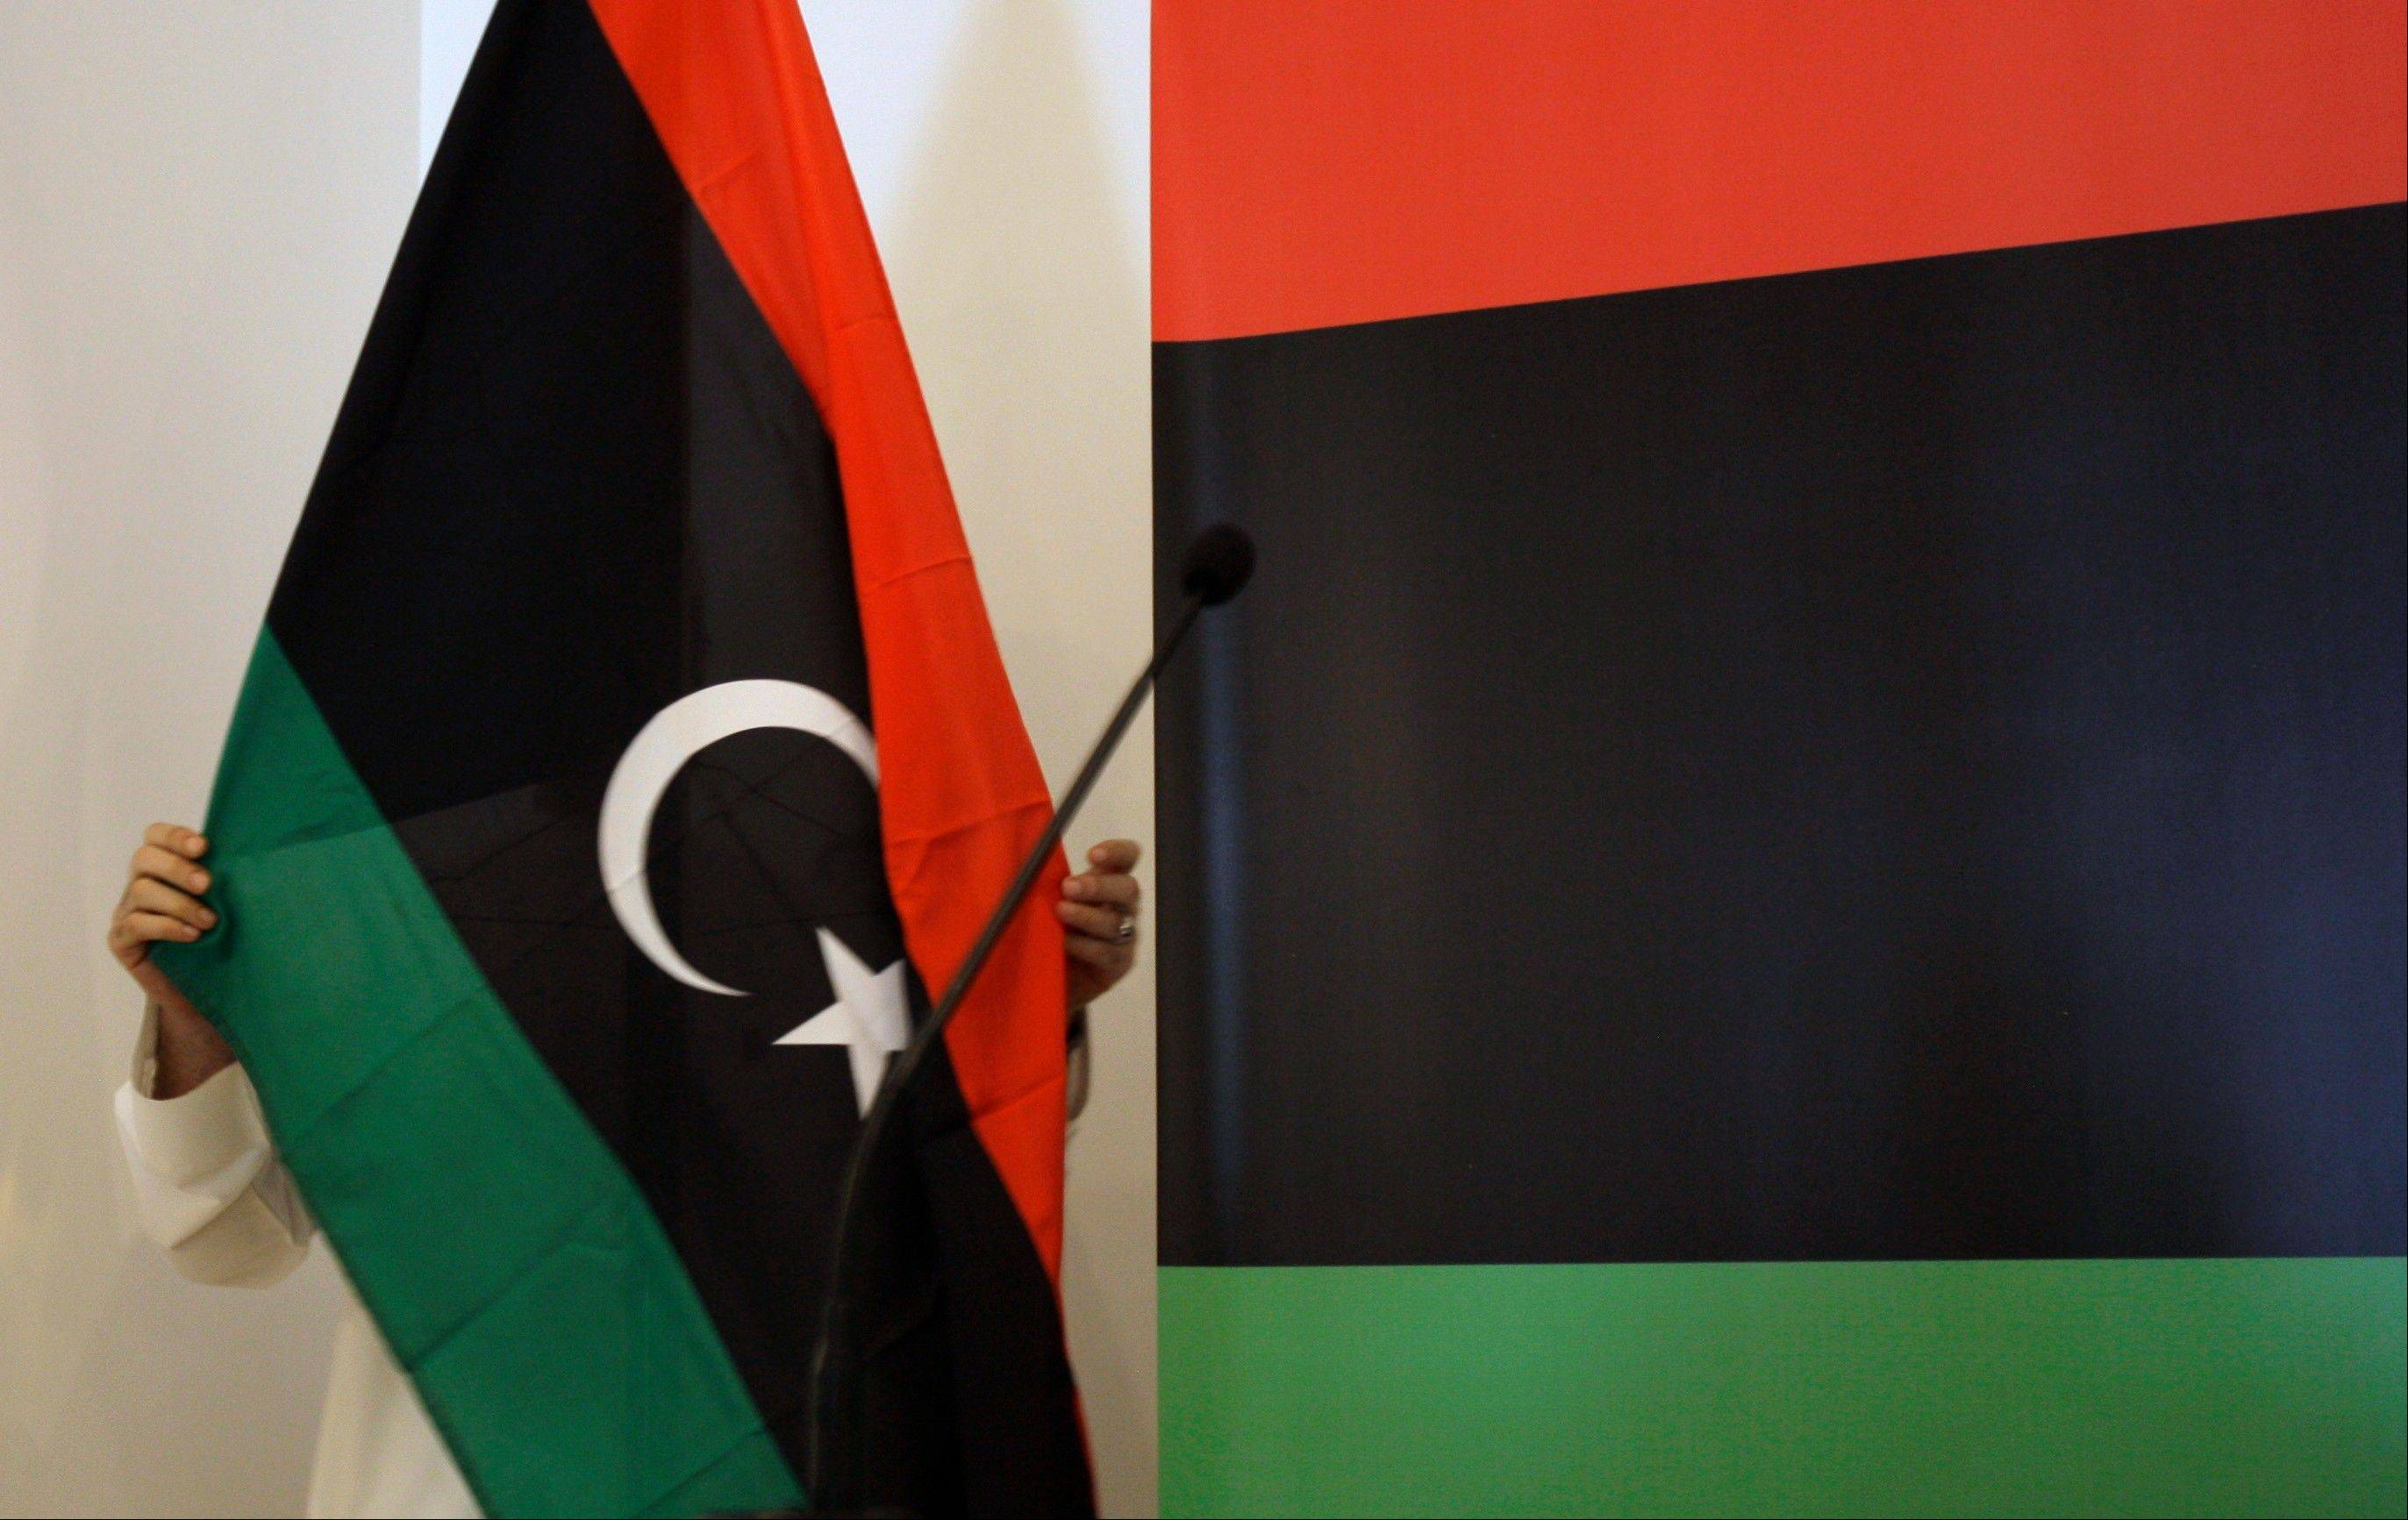 Libyan Abdulhakim Abouabdalla fixes the rebel flag before a press conference at the Libyan consulate in Dubai, United Arab Emirates, Sunday. Oil prices should fall in the next several months.